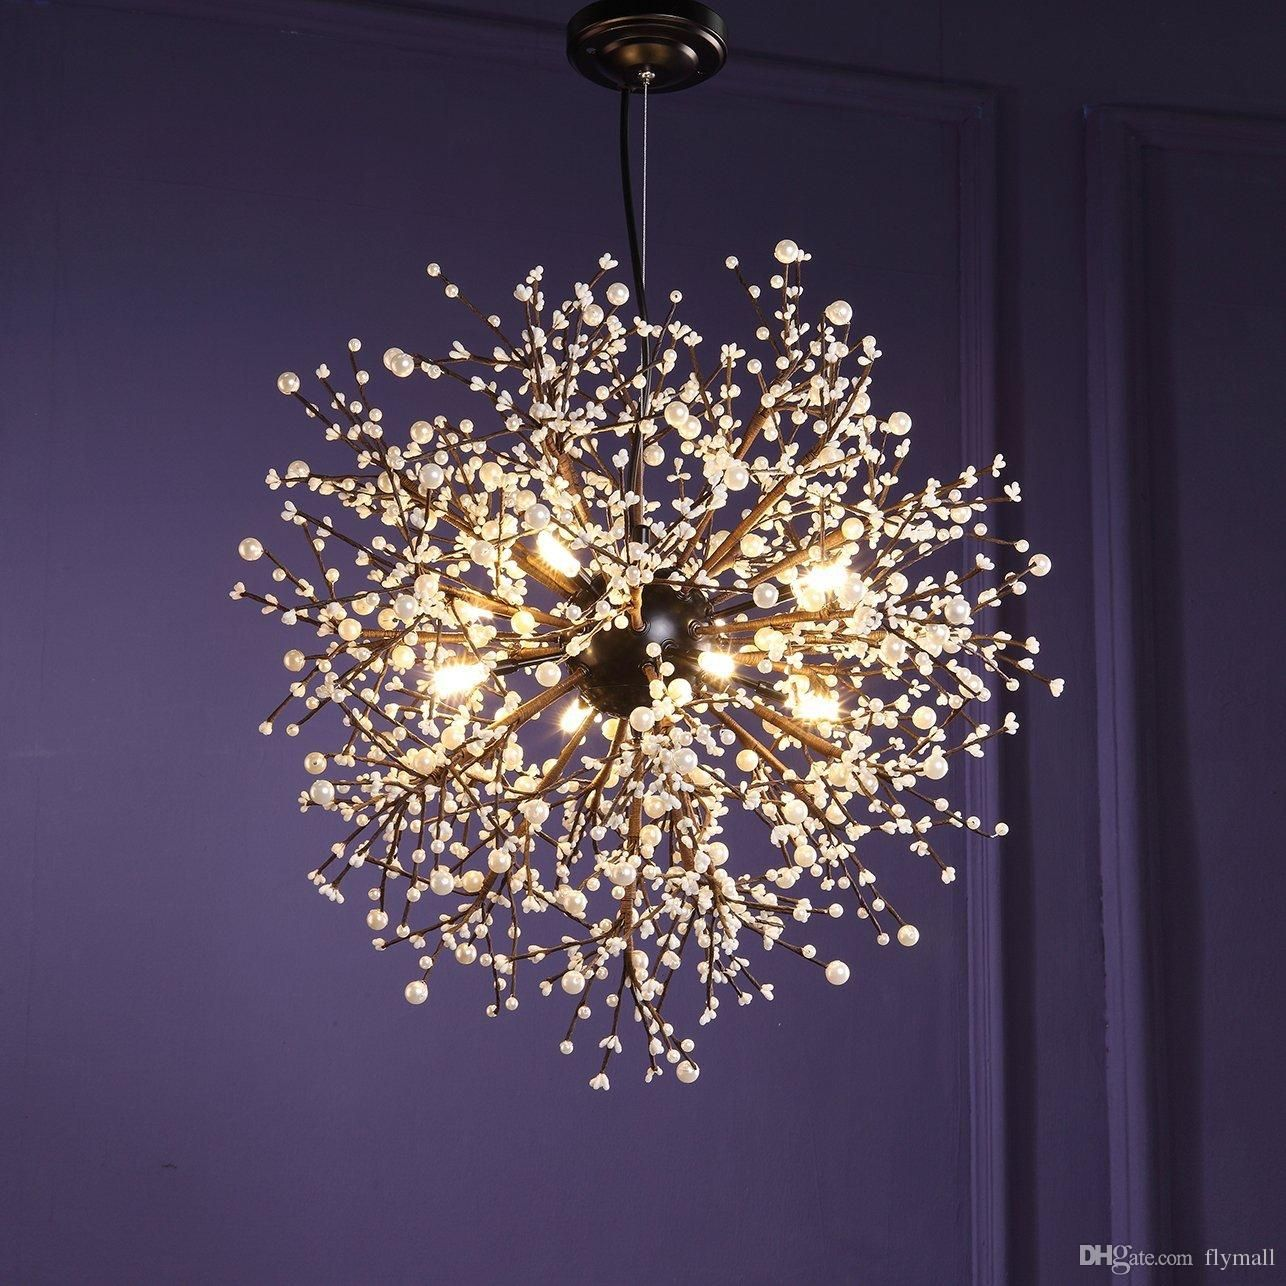 Modern Chandeliers Firework Led Vintage Wrought Iron Chandelier